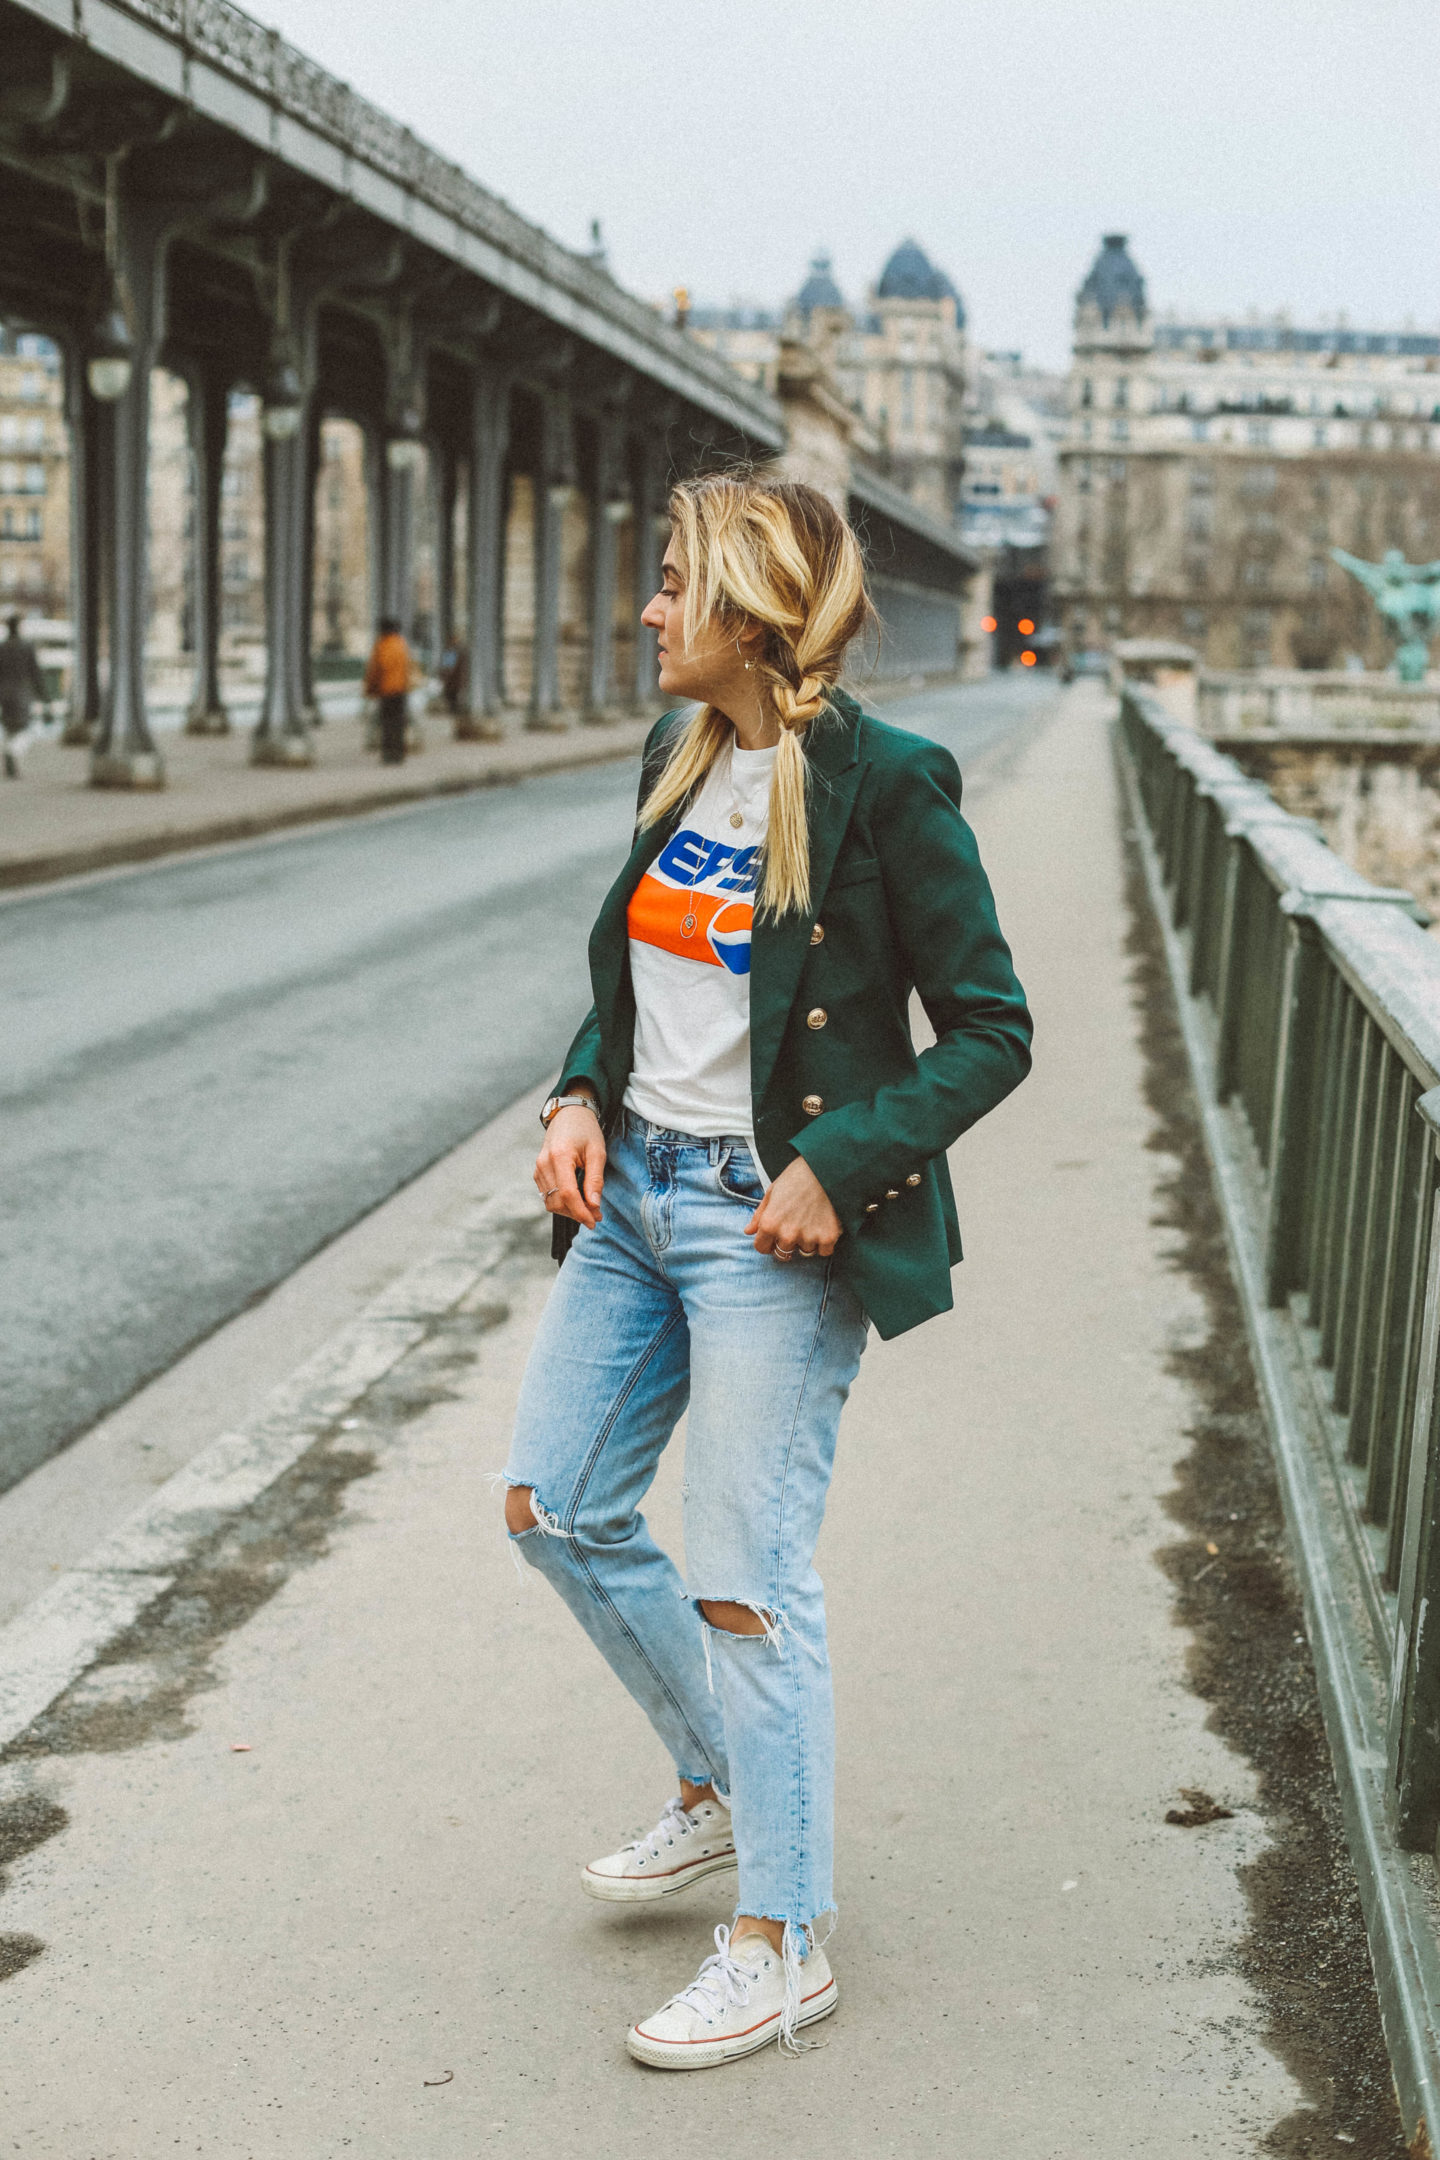 Style 90s - Blondie Baby blog mode et voyages